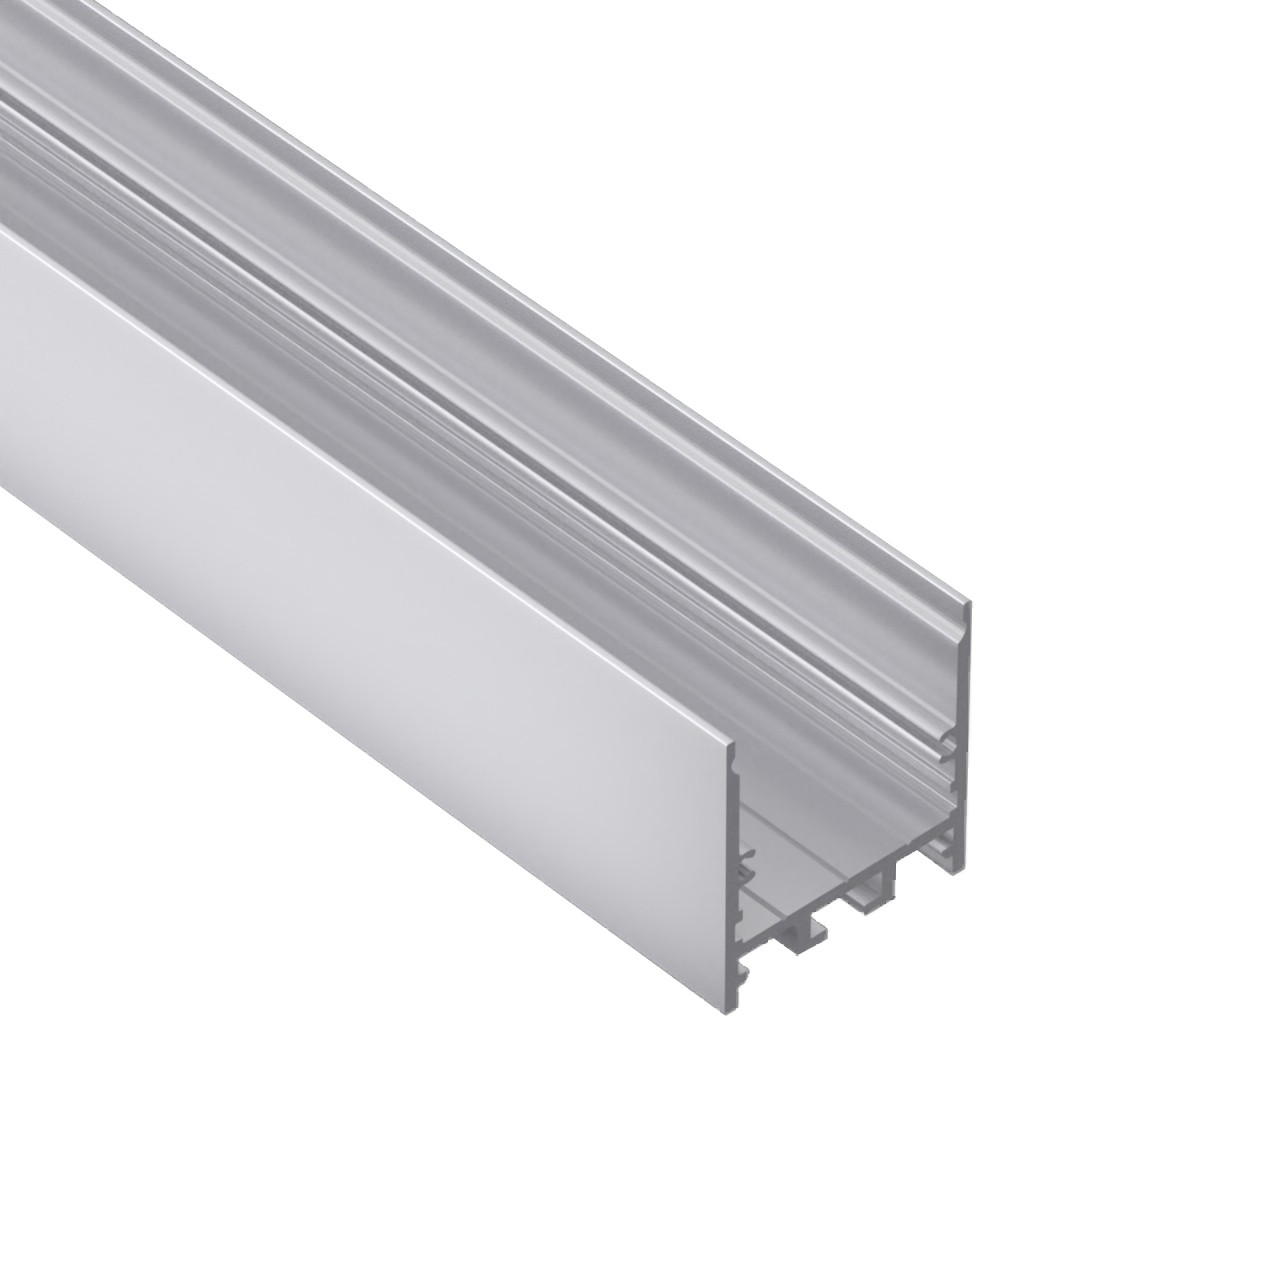 WU35 35mm U Typ Led Aluminium-Profil